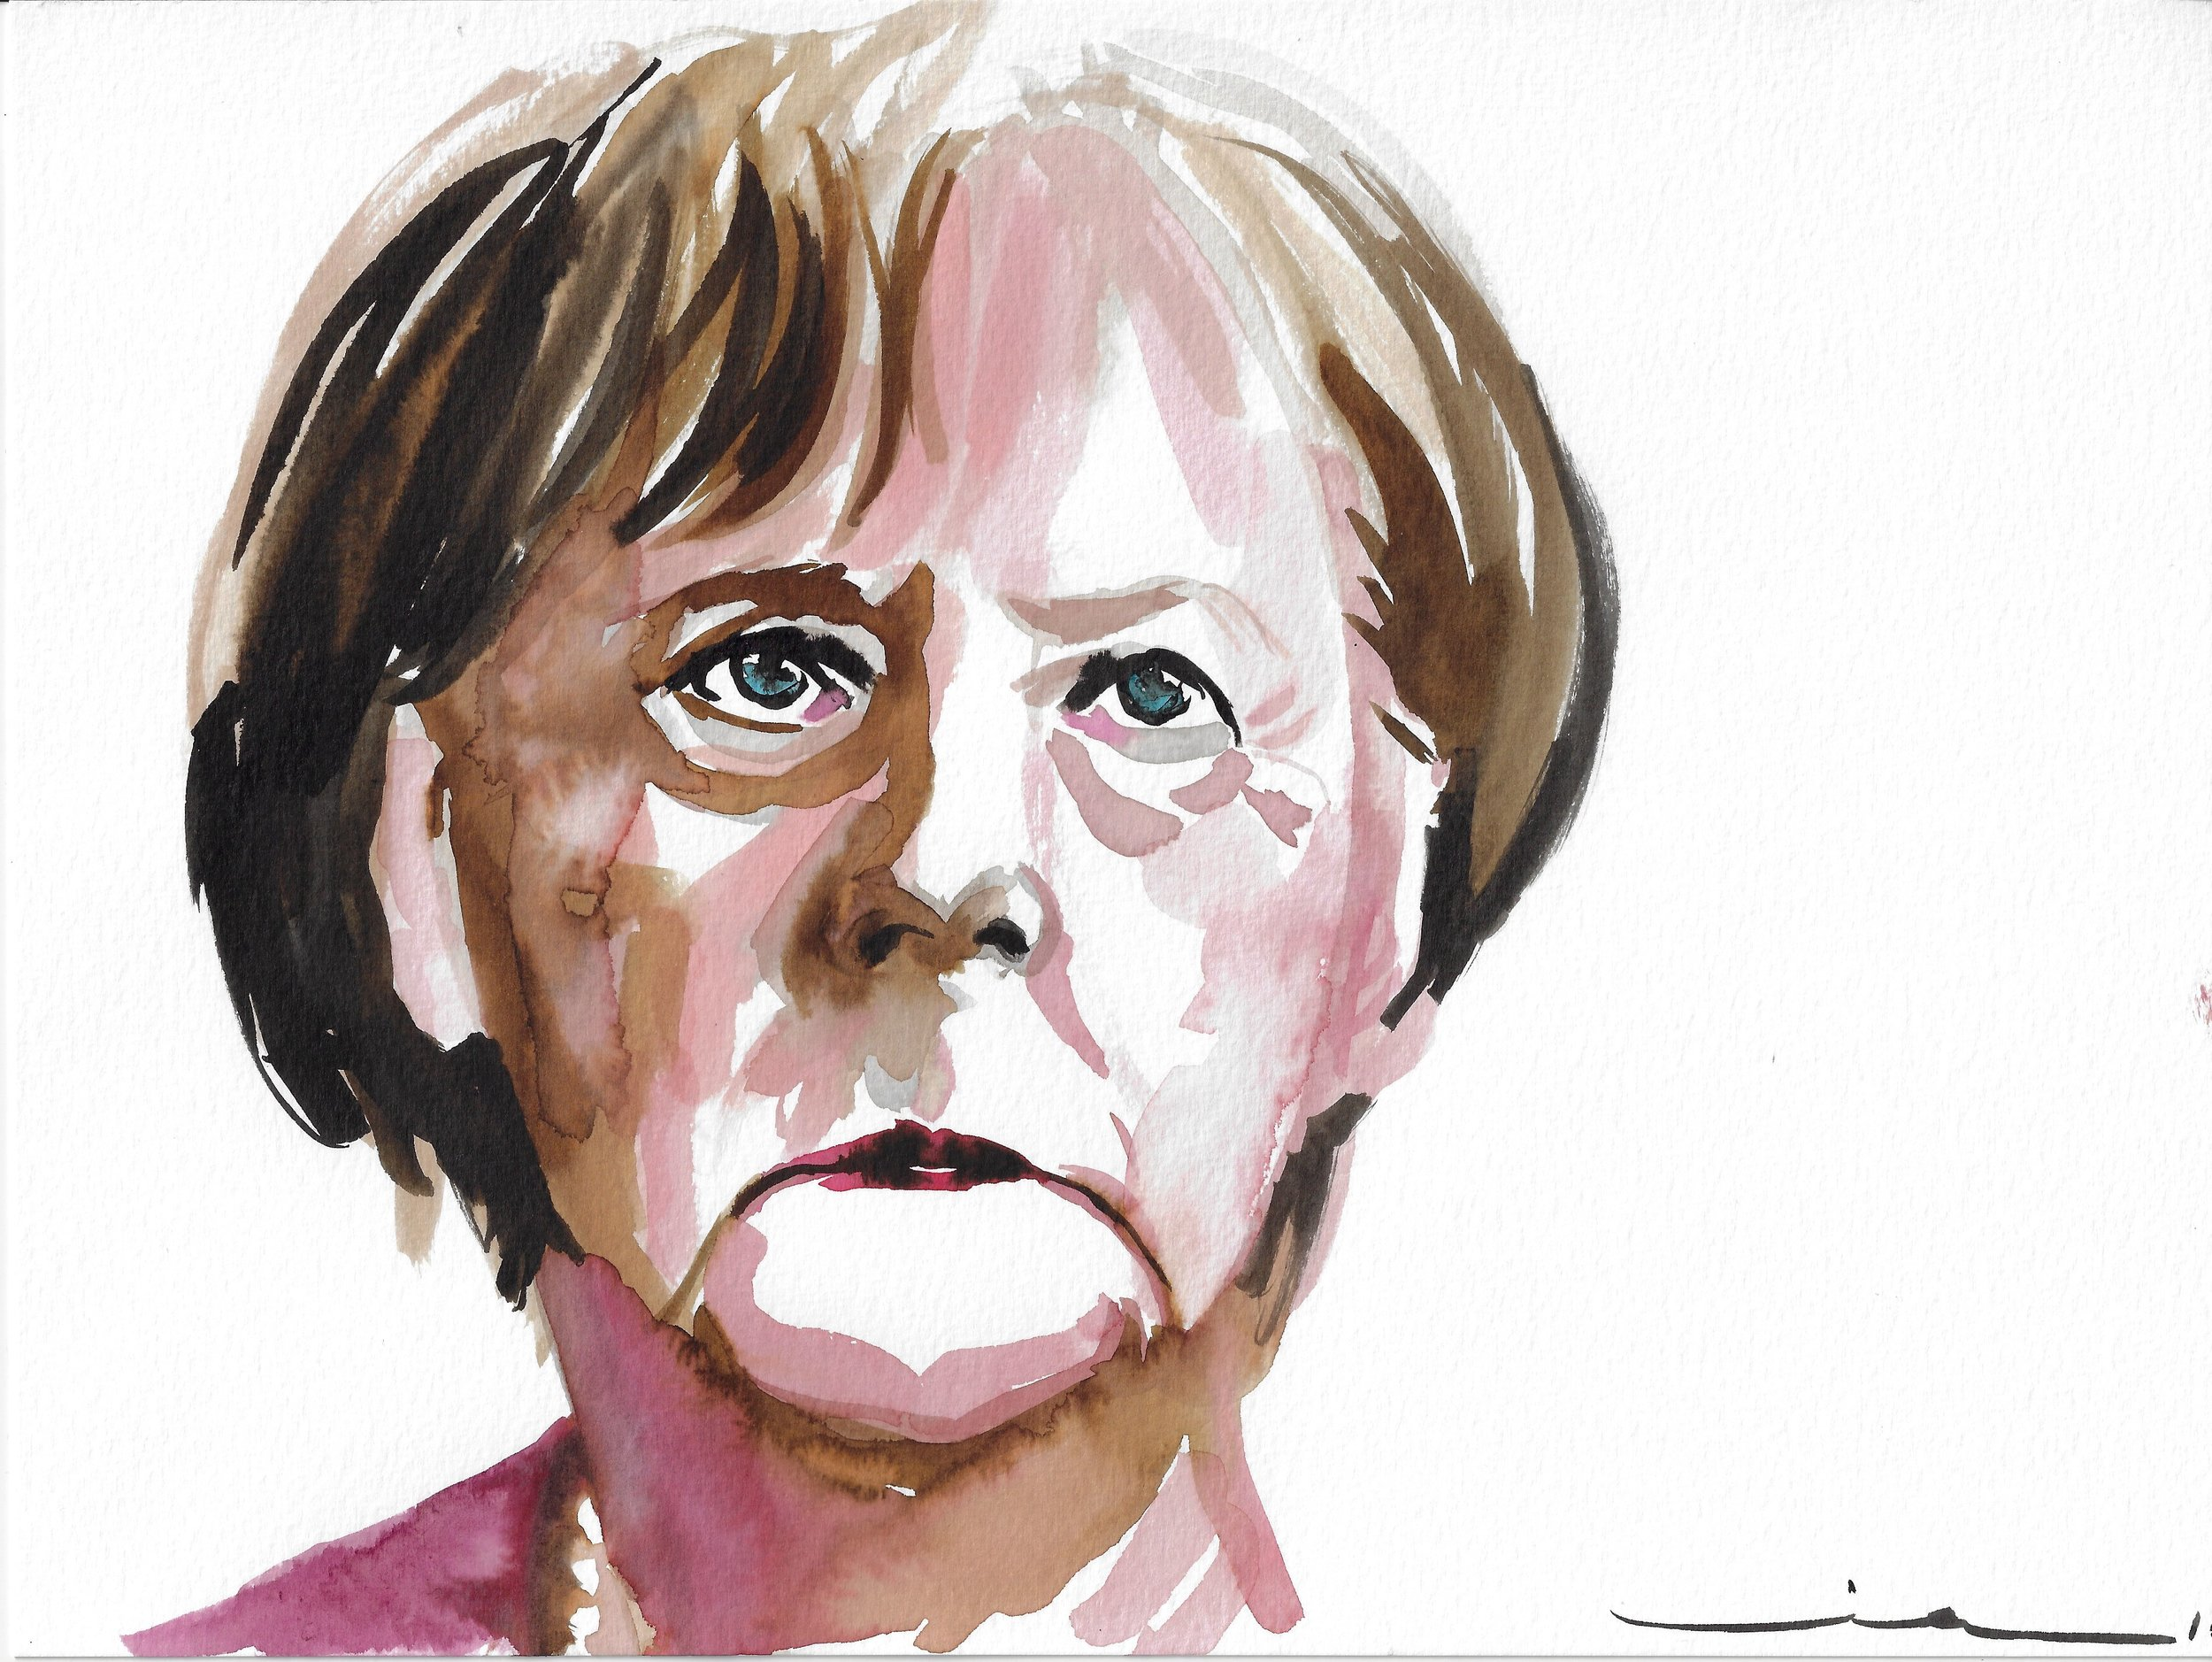 Angela Merkel, German politician and chanceler